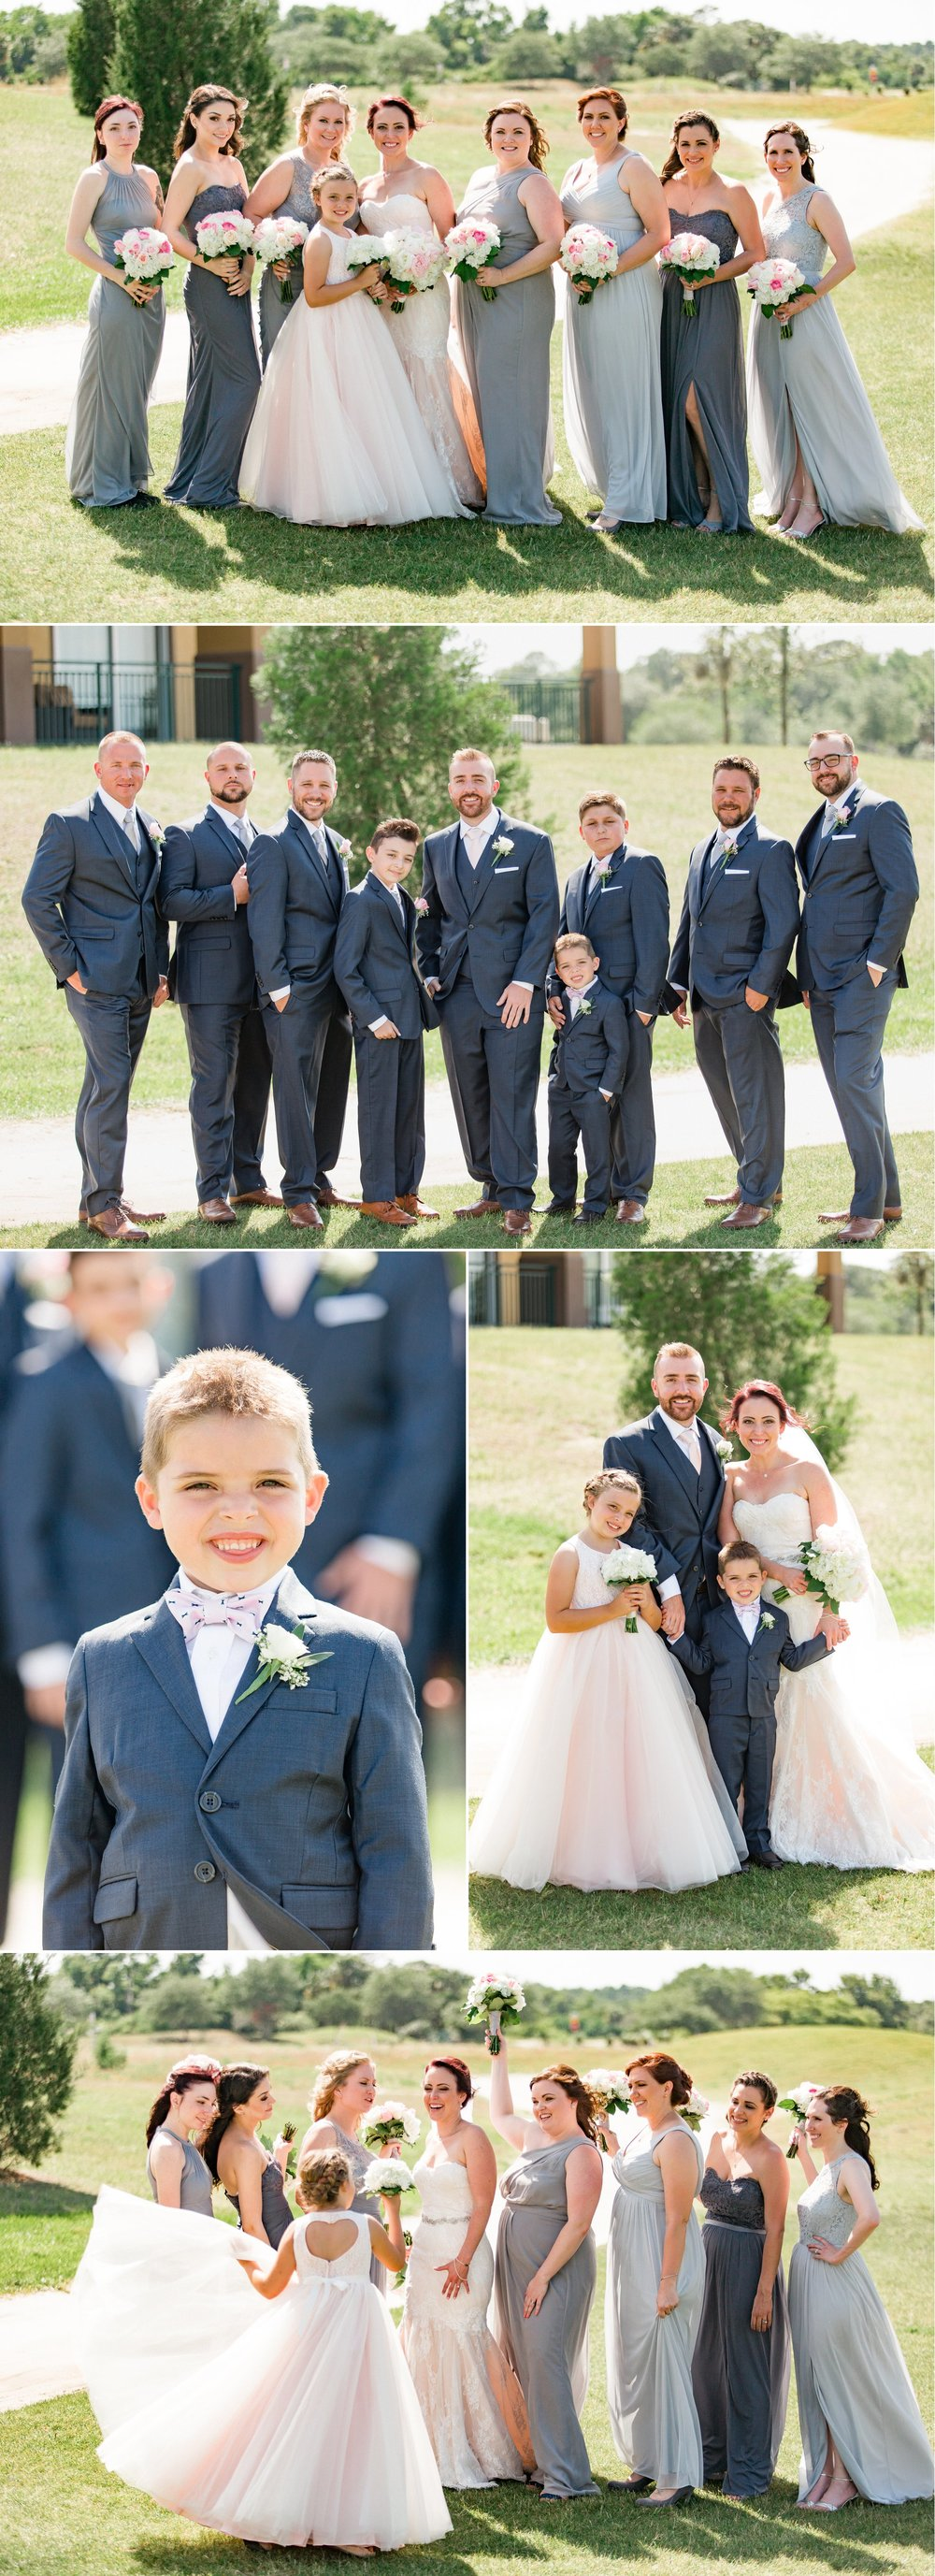 Romantic Pink Spring Wedding - Katie + Joe by Orlando Wedding Photographer Shaina DeCiryan 28.jpg